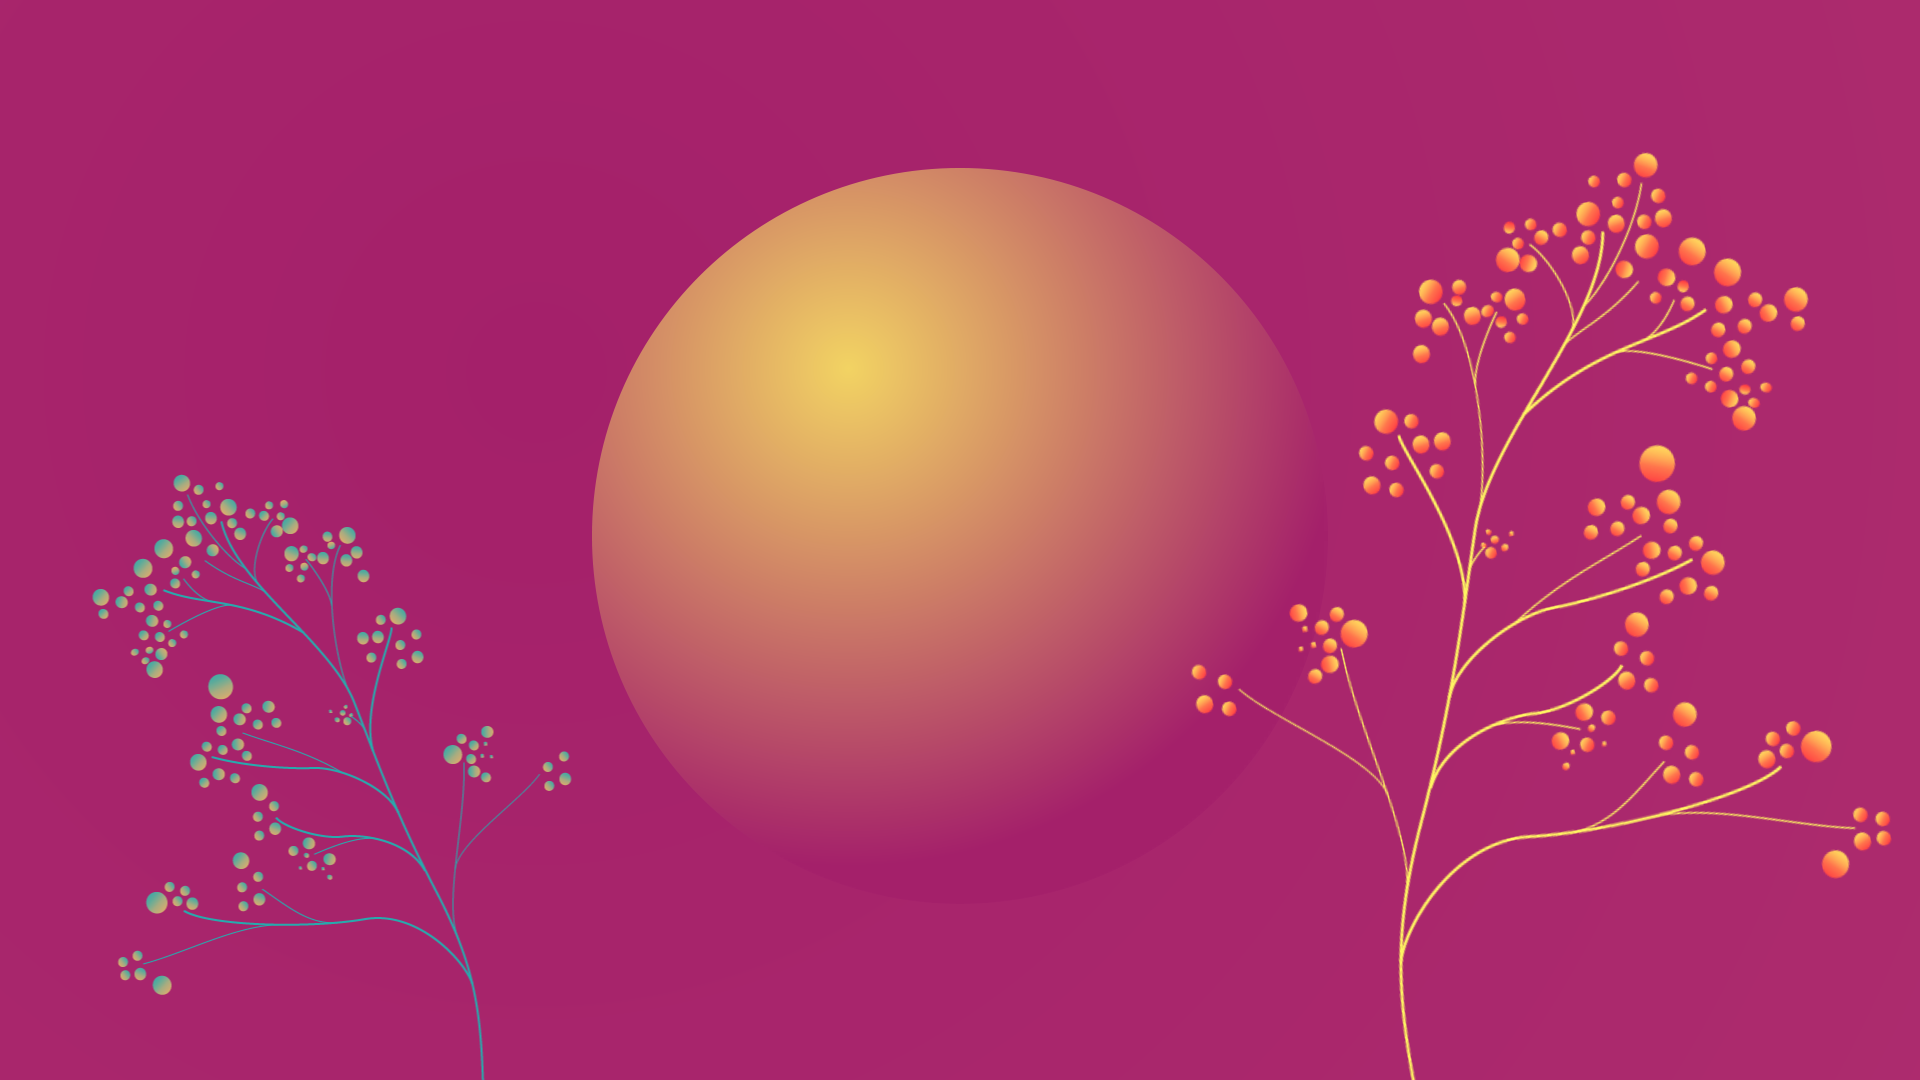 Packaging, inner circle of e-commerce, yellow circle on purple background with growing purple and orange plants.